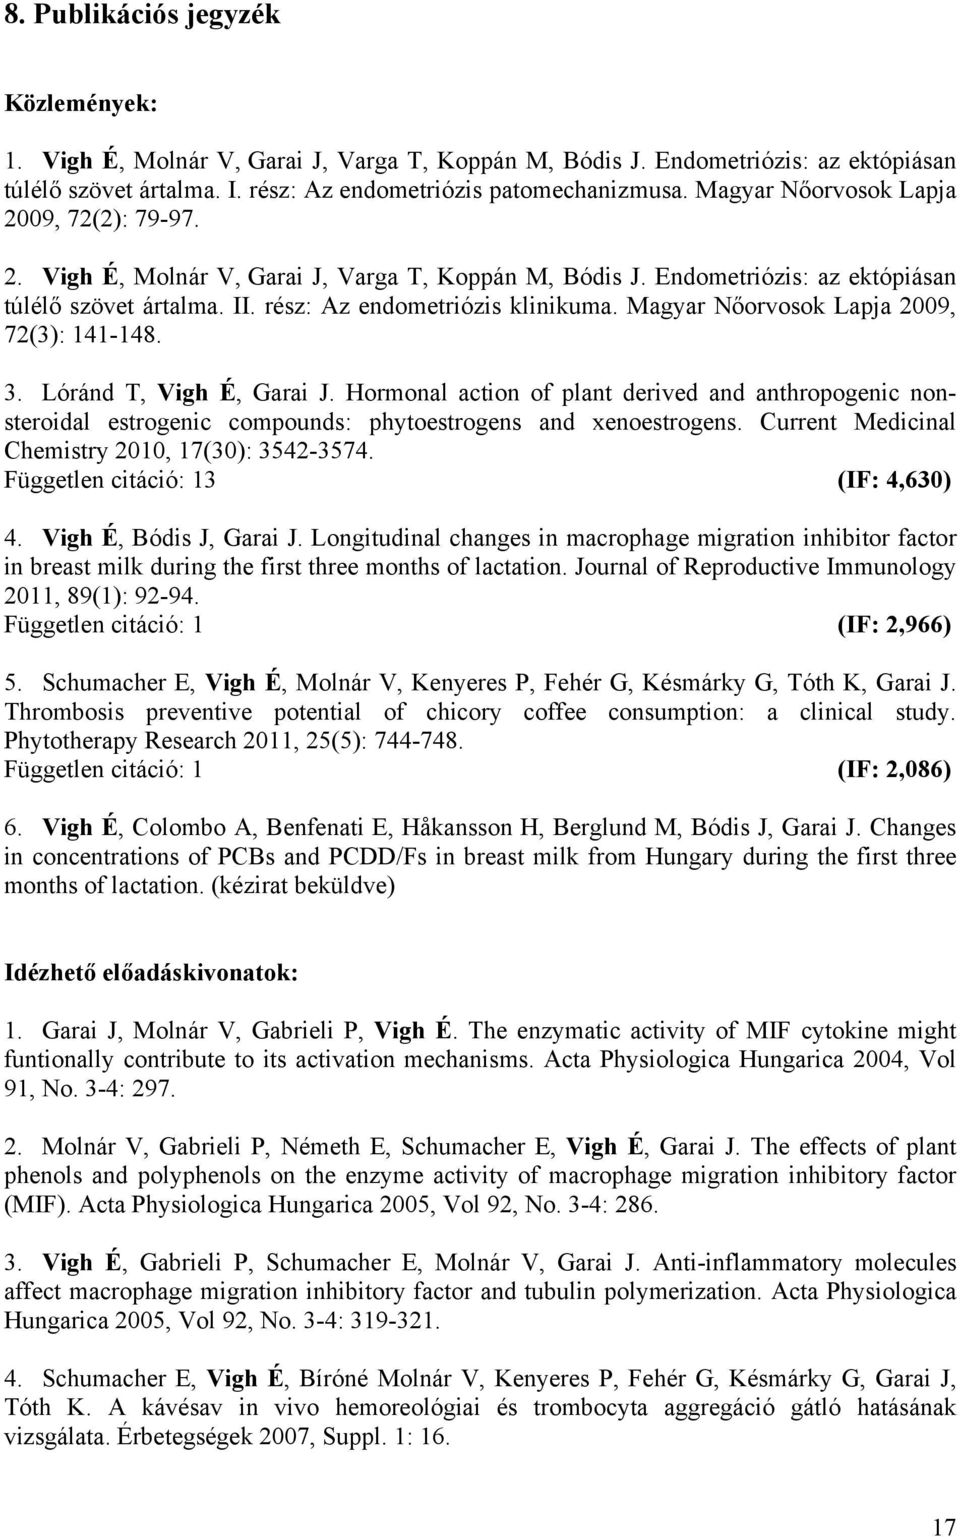 Magyar Nőorvosok Lapja 2009, 72(3): 141-148. 3. Lóránd T, Vigh É, Garai J. Hormonal action of plant derived and anthropogenic nonsteroidal estrogenic compounds: phytoestrogens and xenoestrogens.